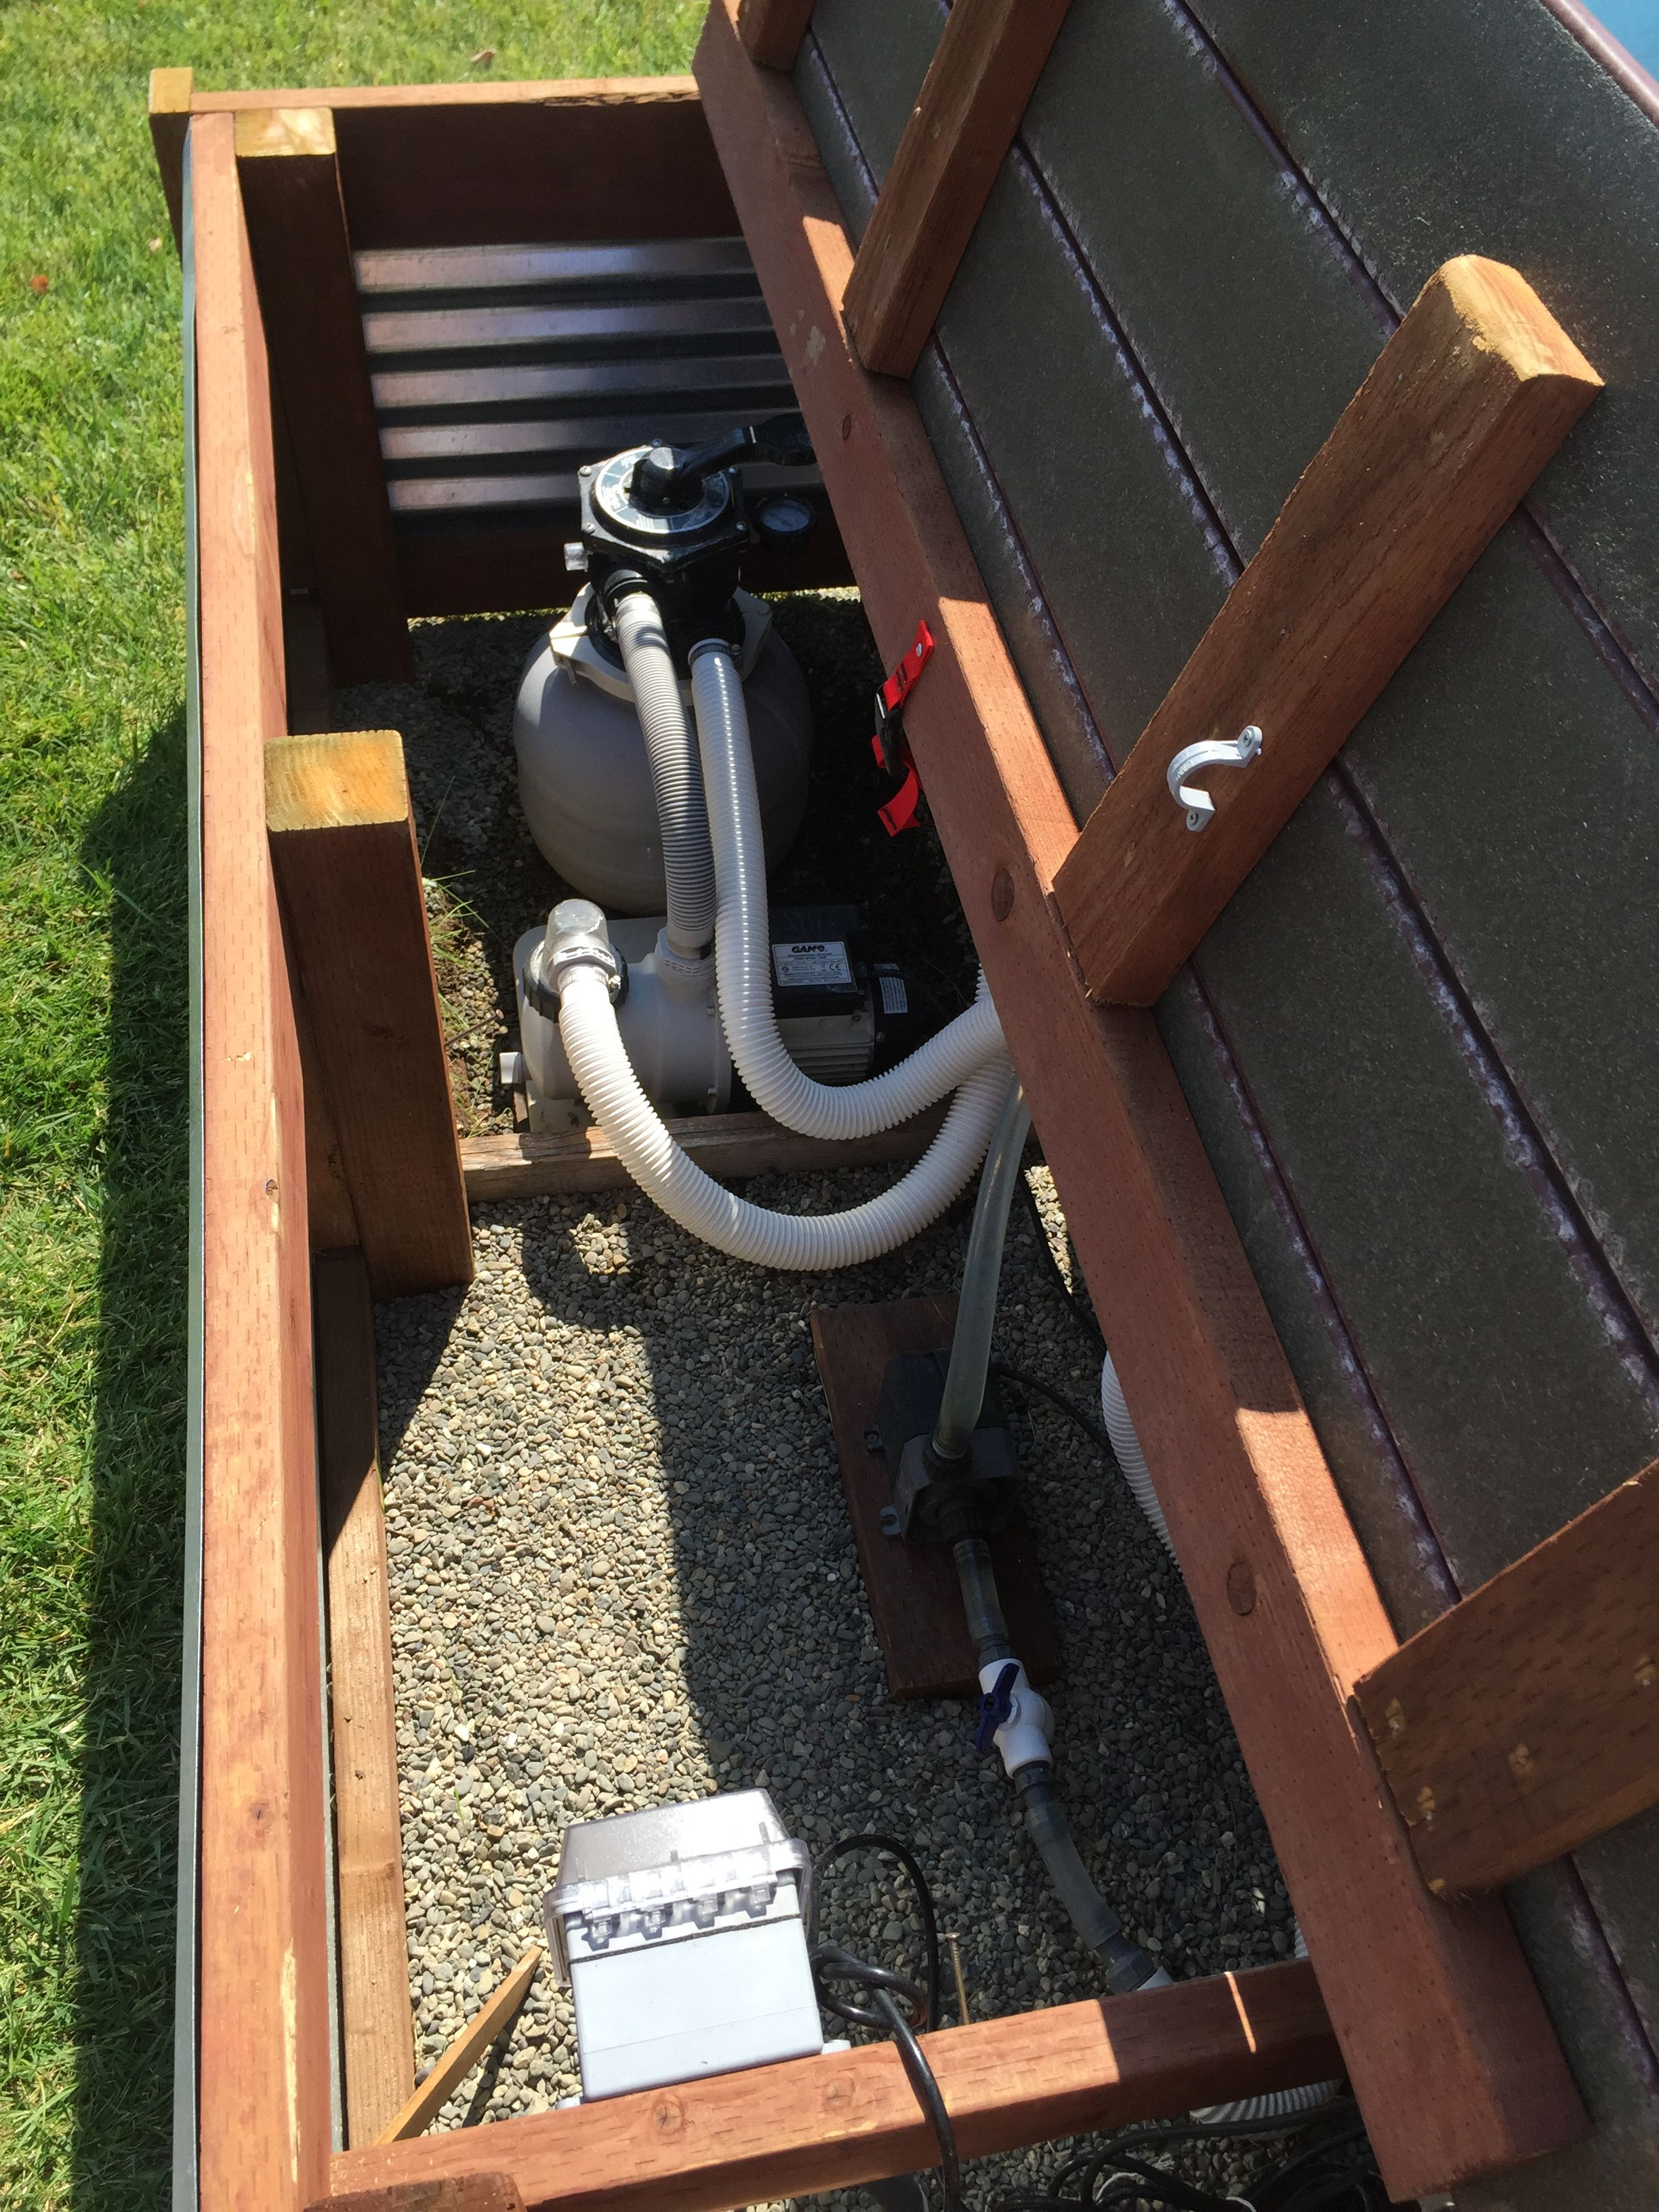 Stock tank pool filter and fountain pump | Stock Tank Pool ...